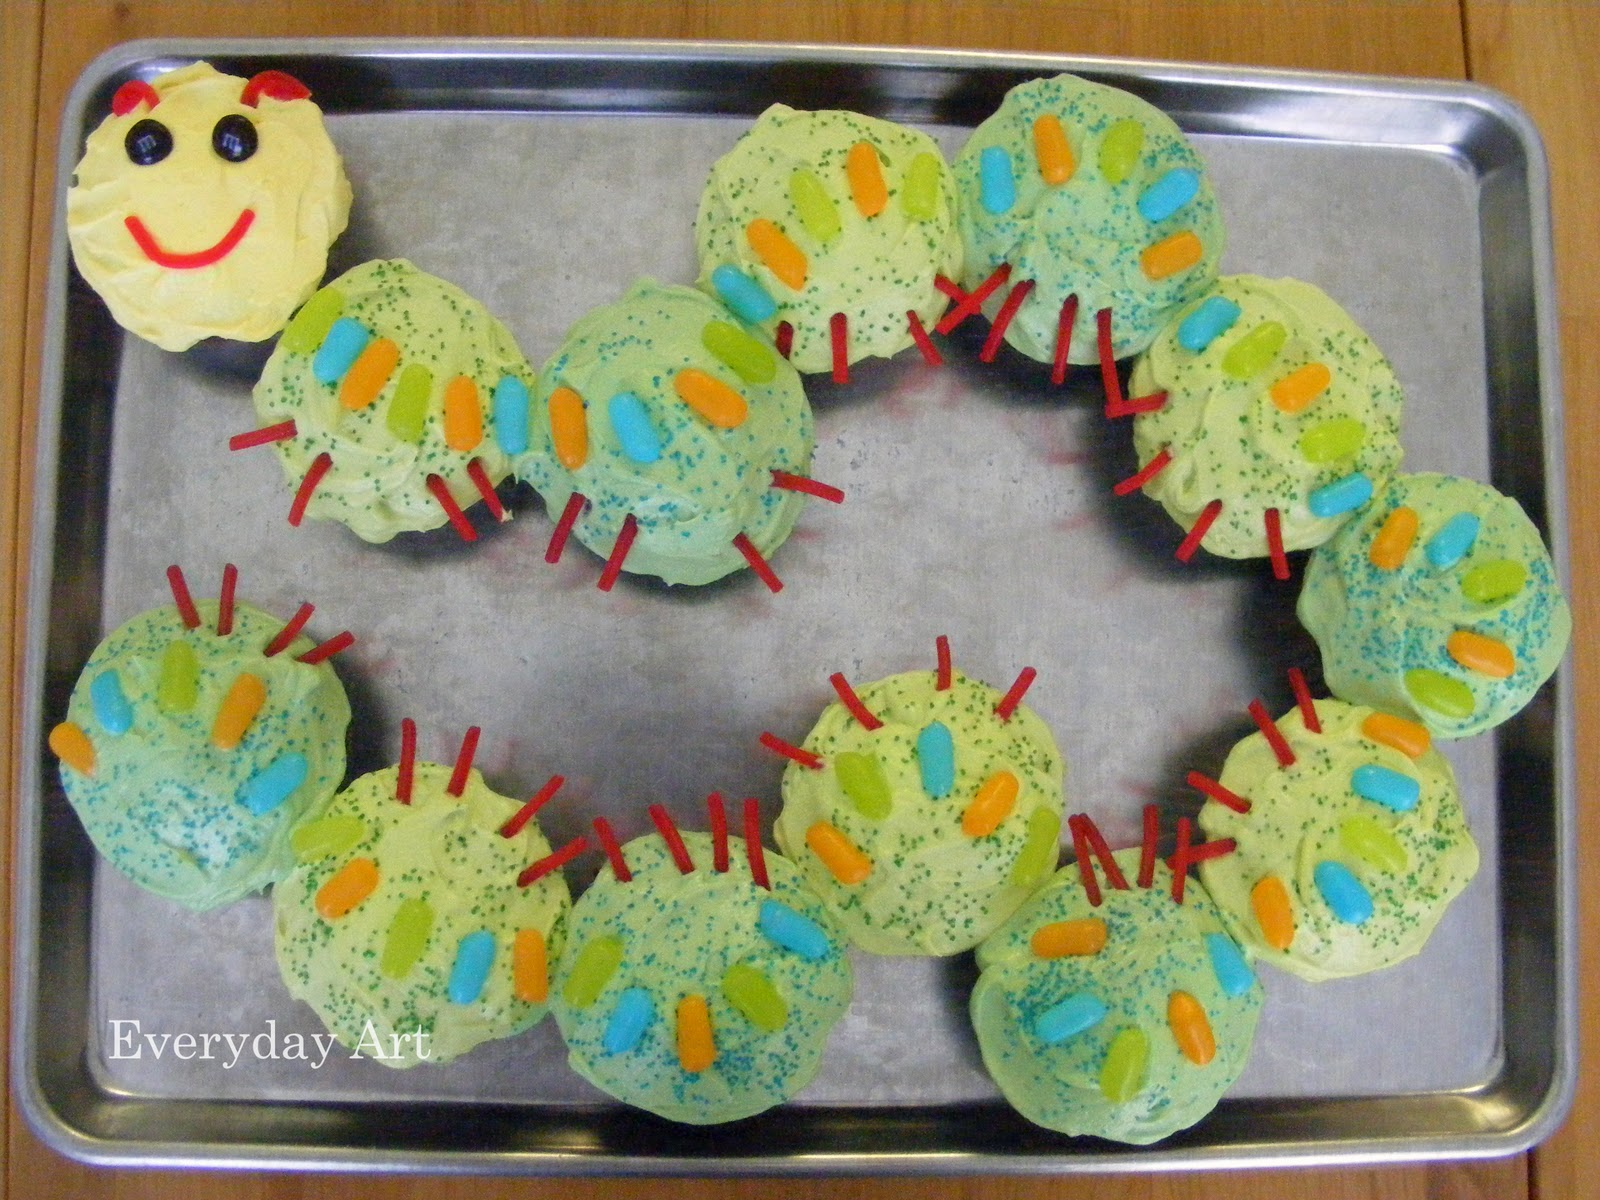 Everyday Art Caterpillar Birthday Cake